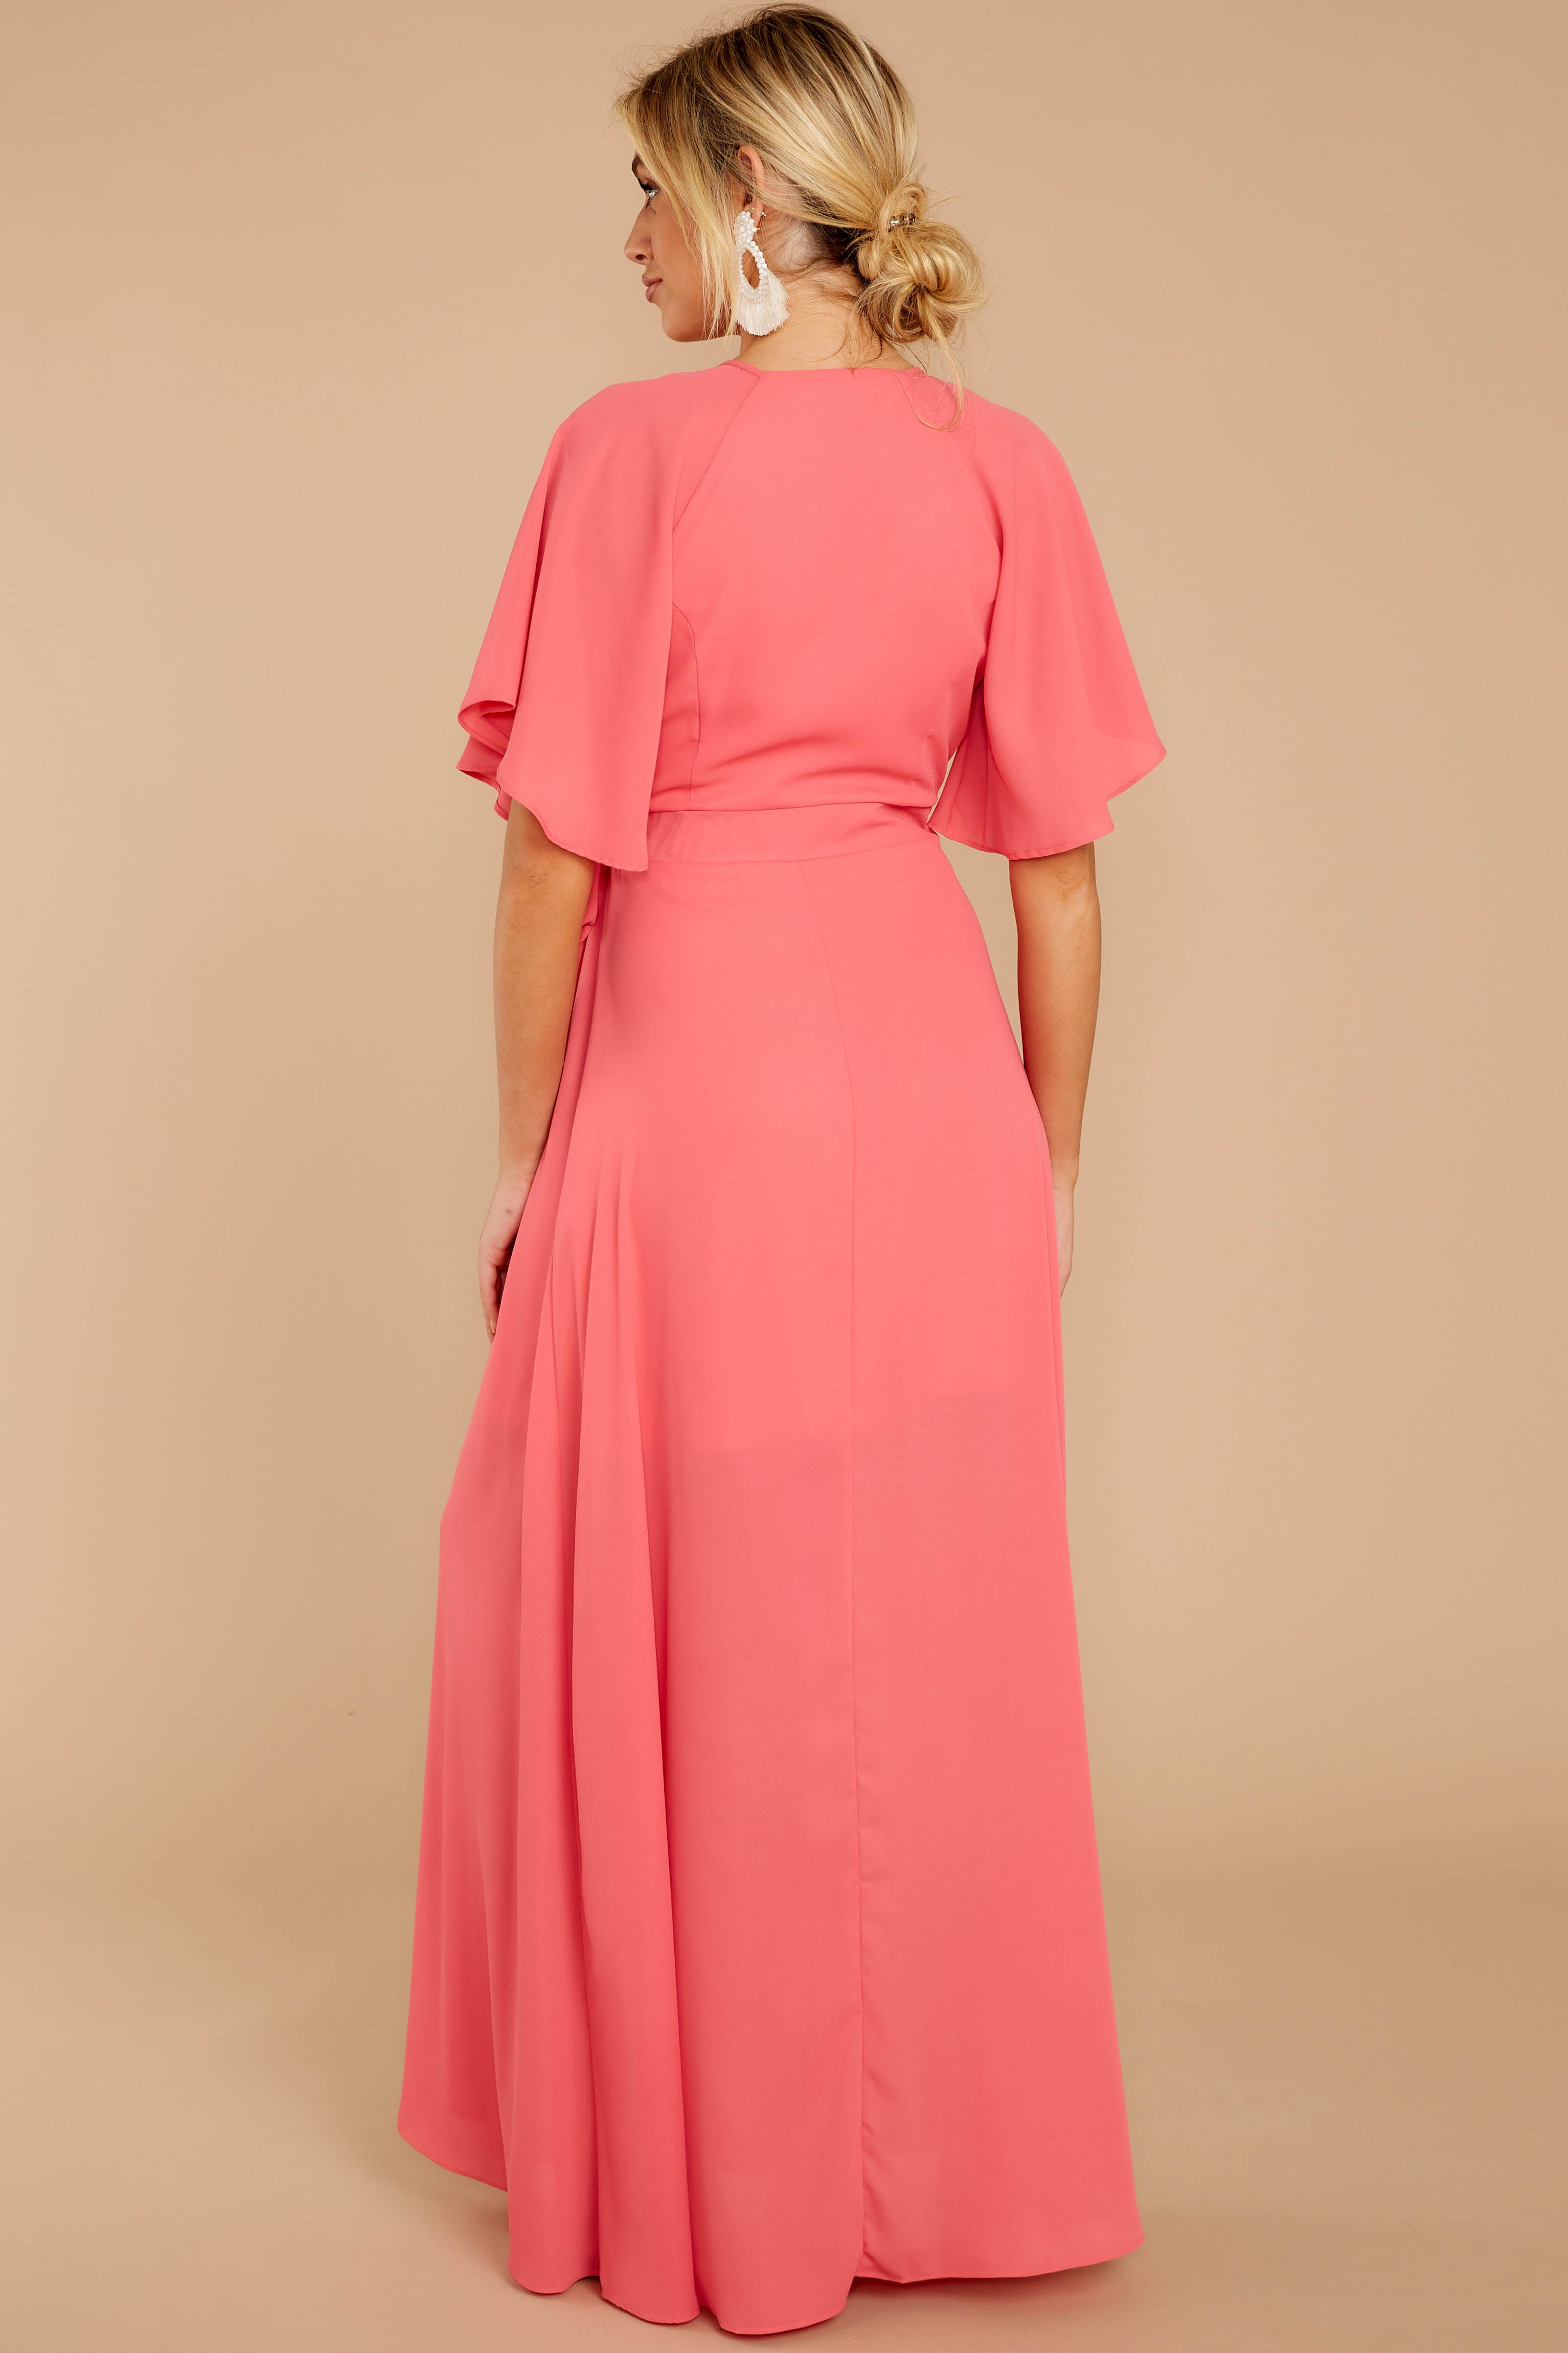 6 Wrapped In Elegance Flamingo Pink Maxi Dress at reddress.com